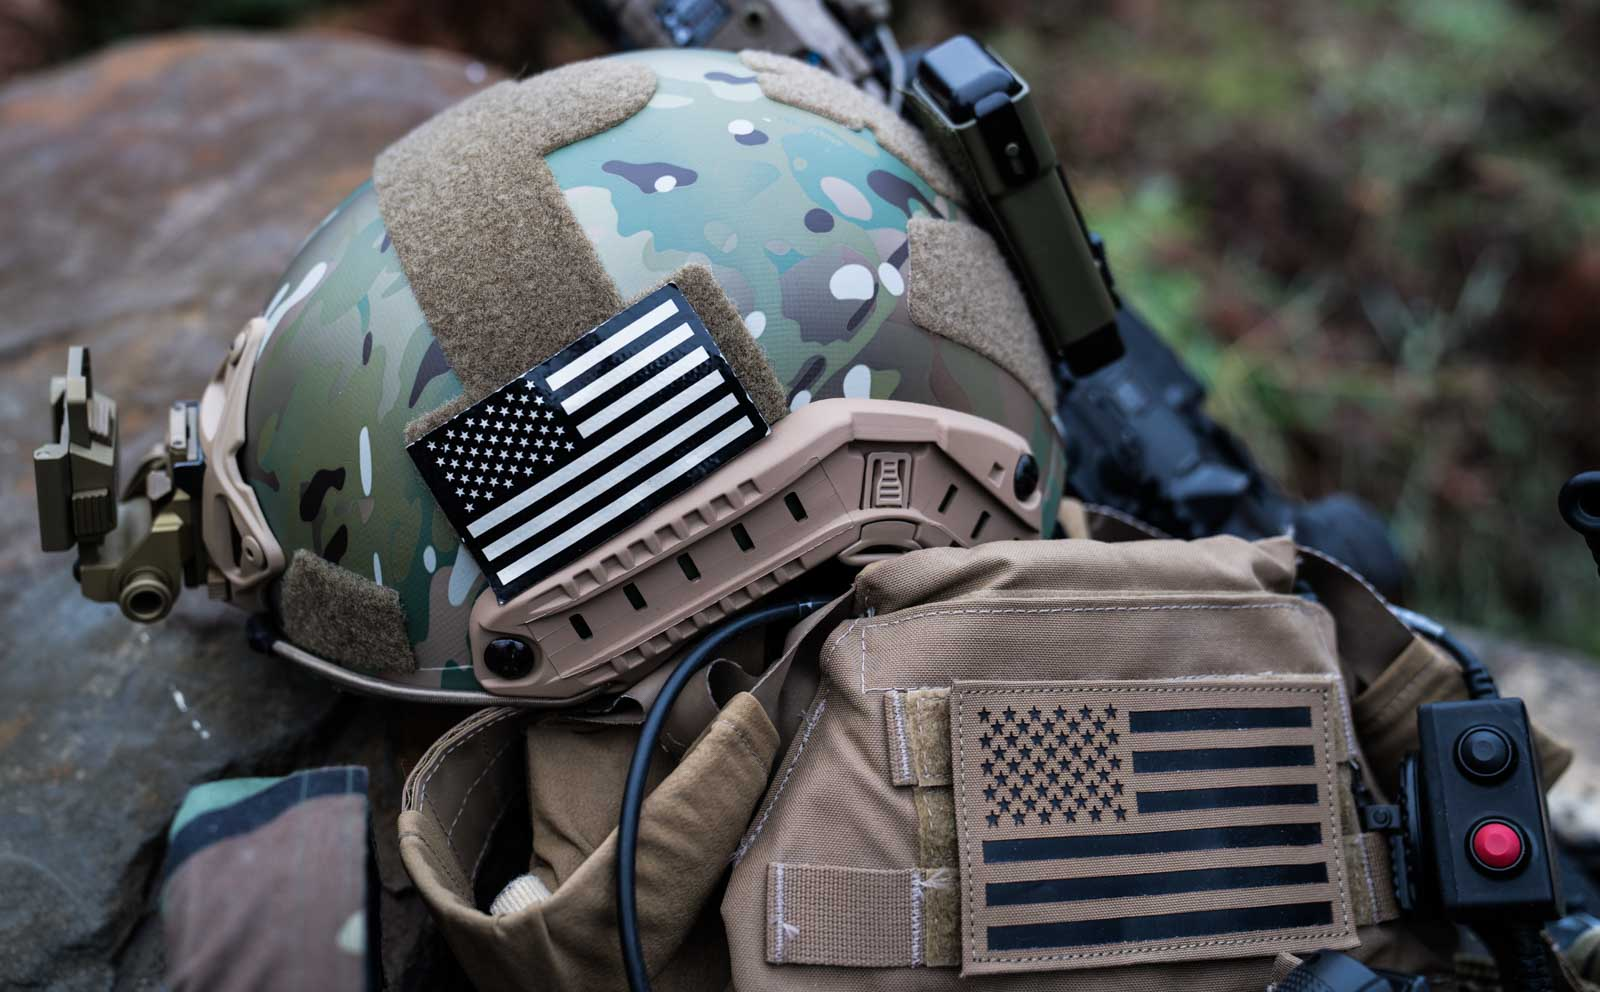 Setting Up Your Helmet With Communications Gear